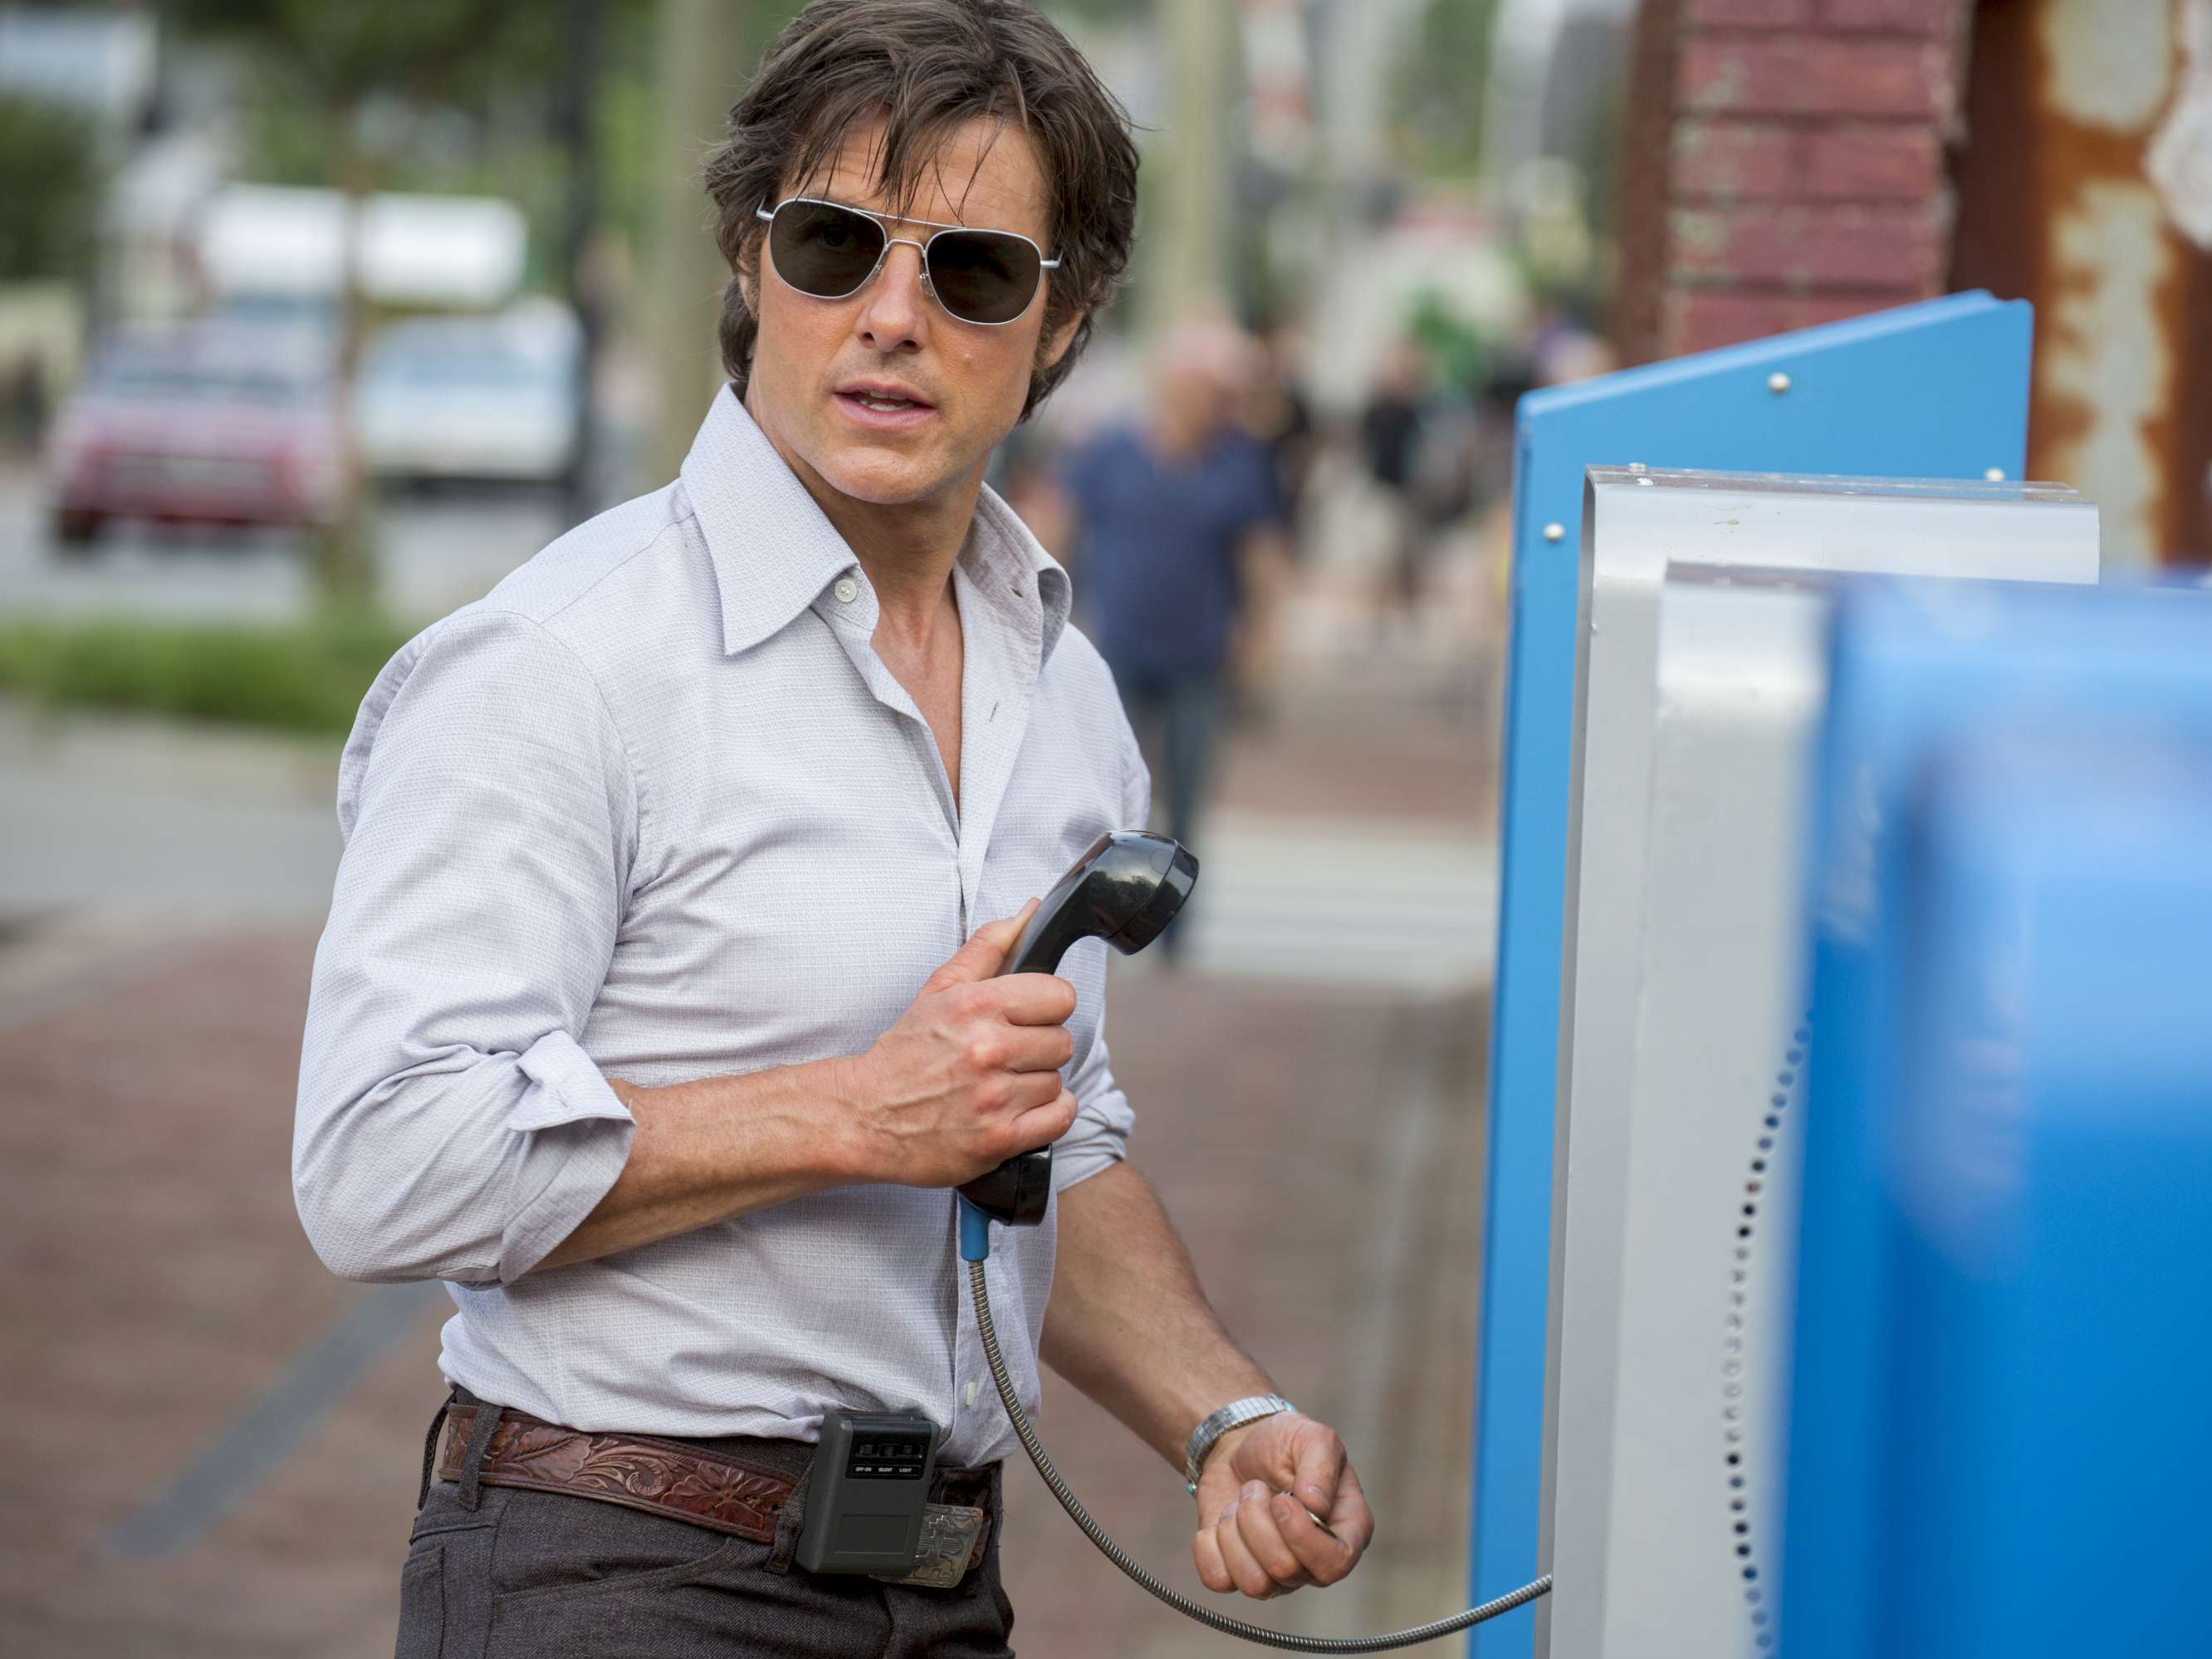 American Made Unlikely to Beat Kingsman 2 at Weekend Box Office